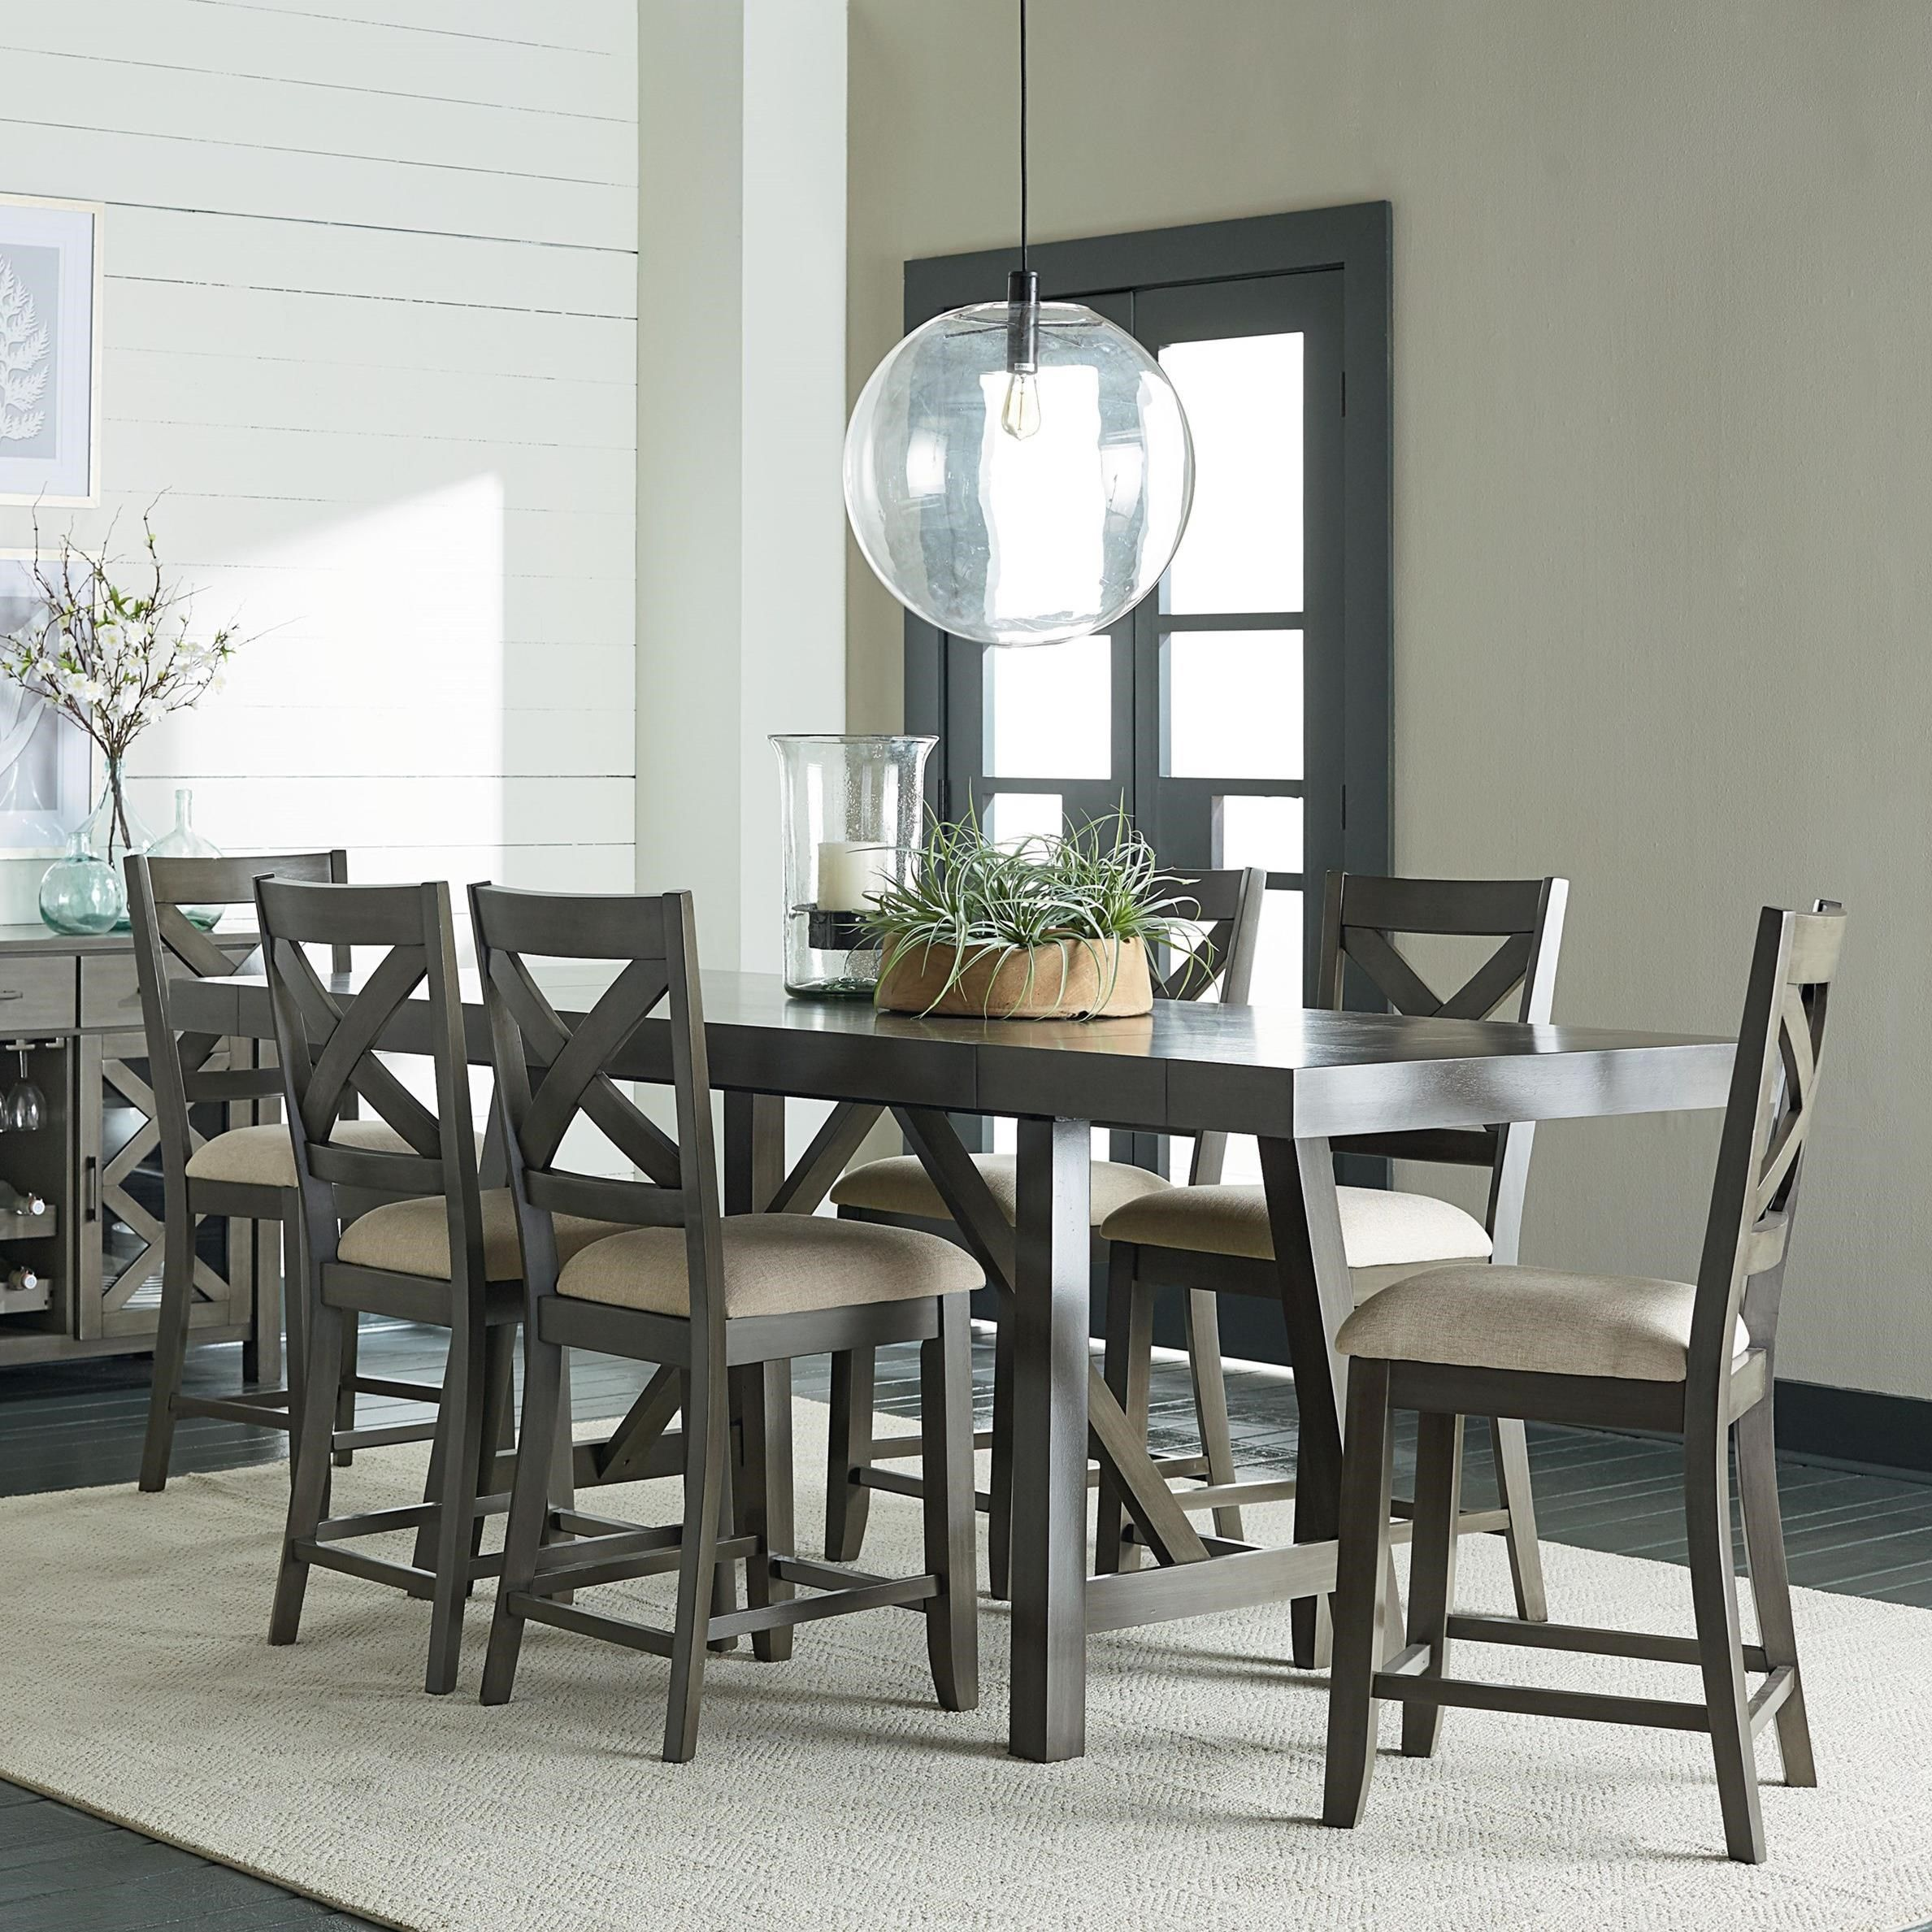 Omaha Grey Trestle Table Dining Set by Standard Furniture   Grey ...